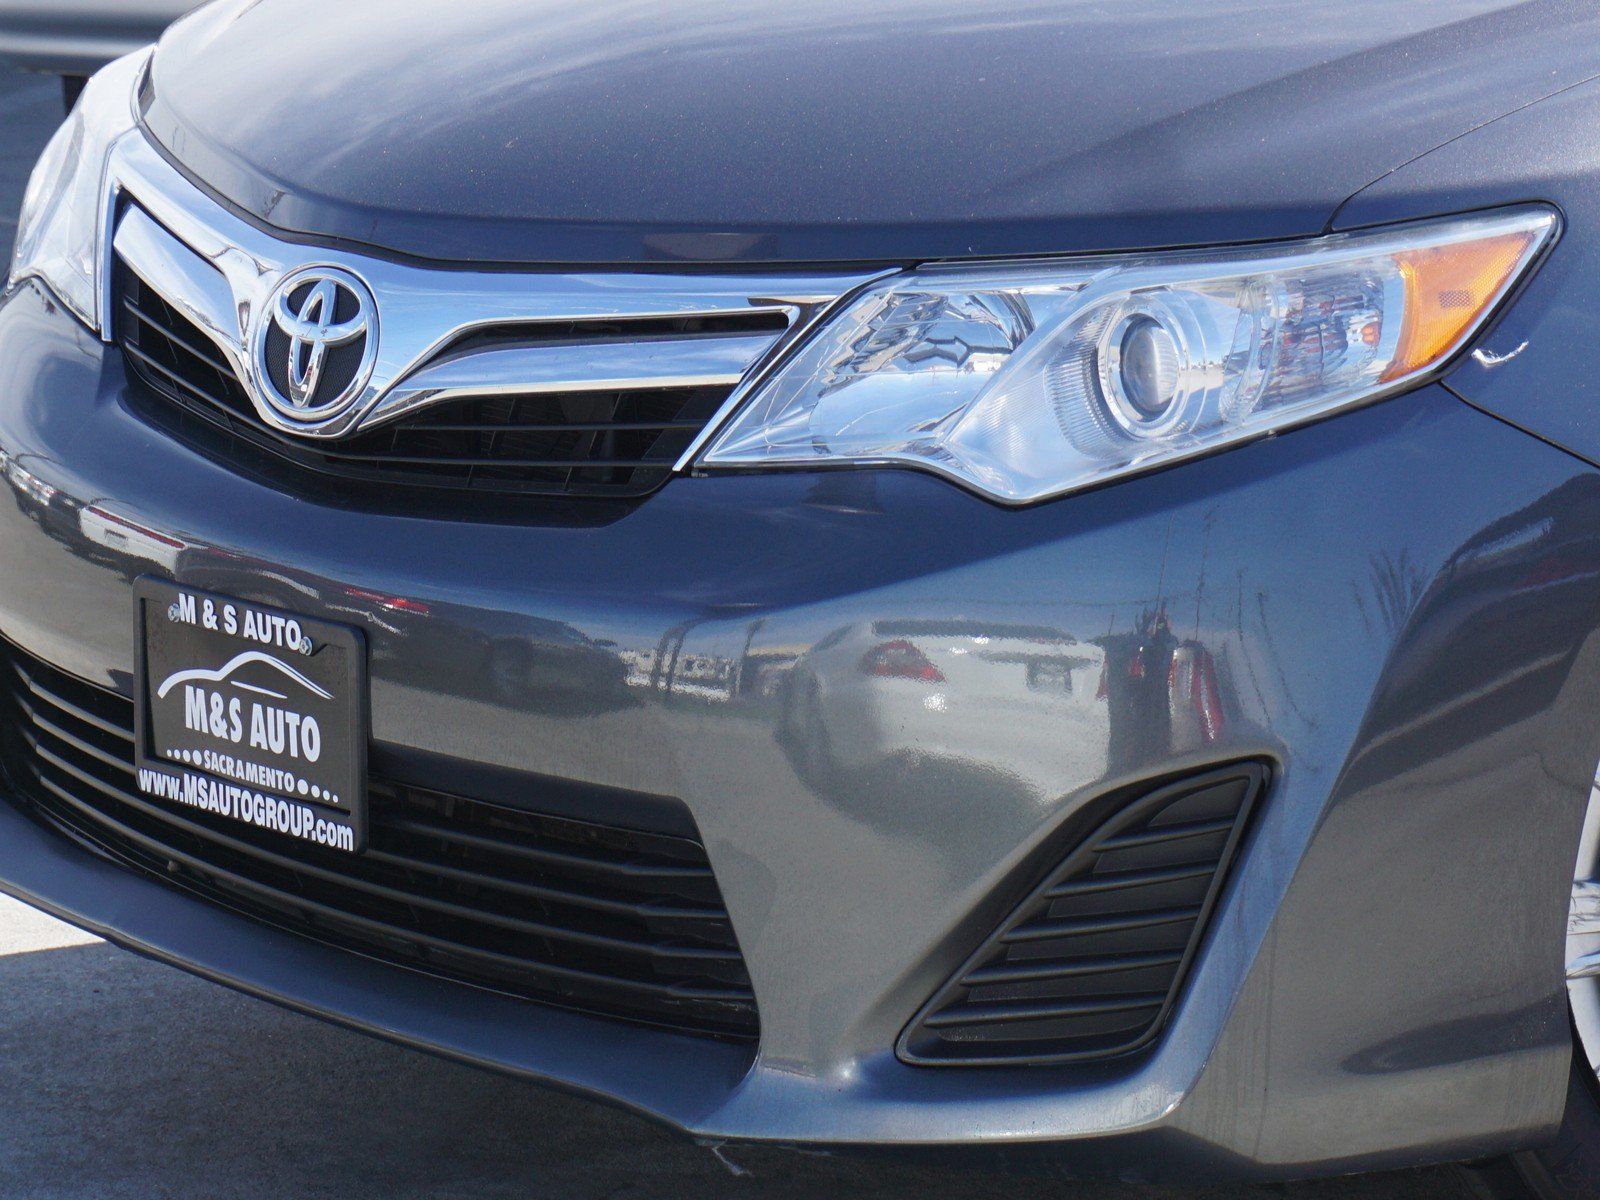 Pre Owned 2014 Toyota Camry Le 4dr Car In Sacramento A23198 M And Venza Exterior Accessories